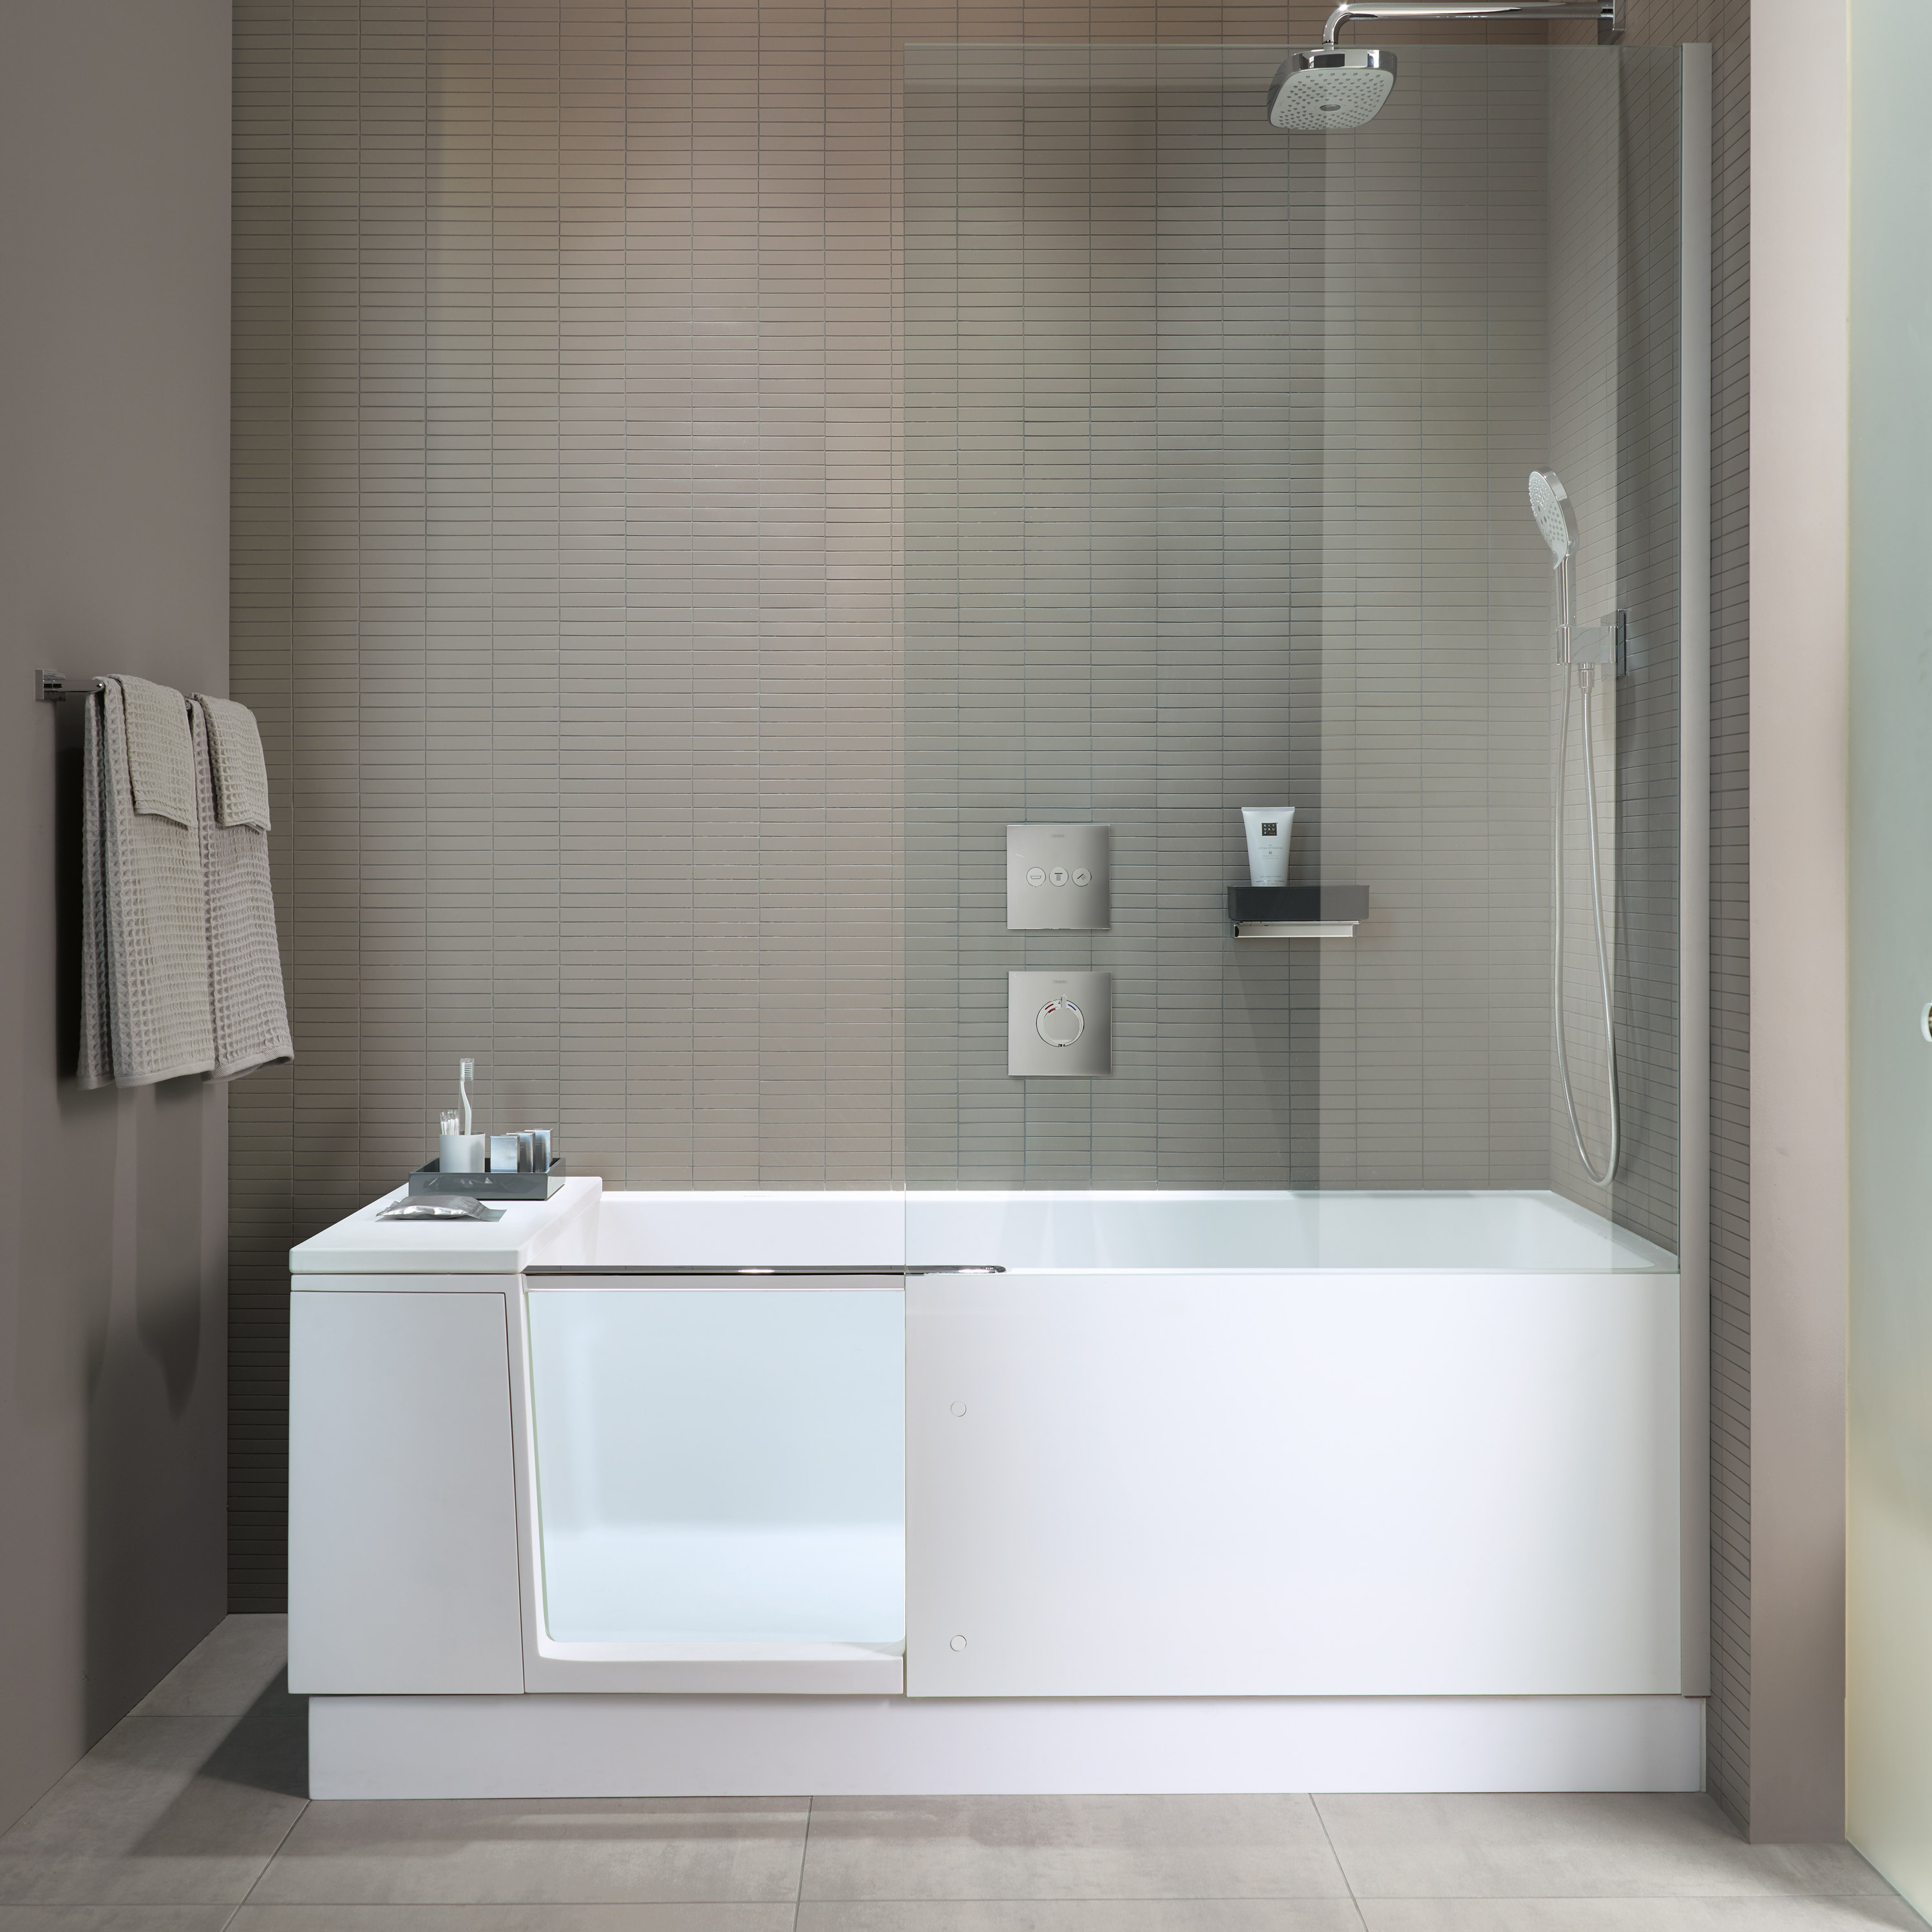 Shower bath duravit for Walk in shower plans and specs